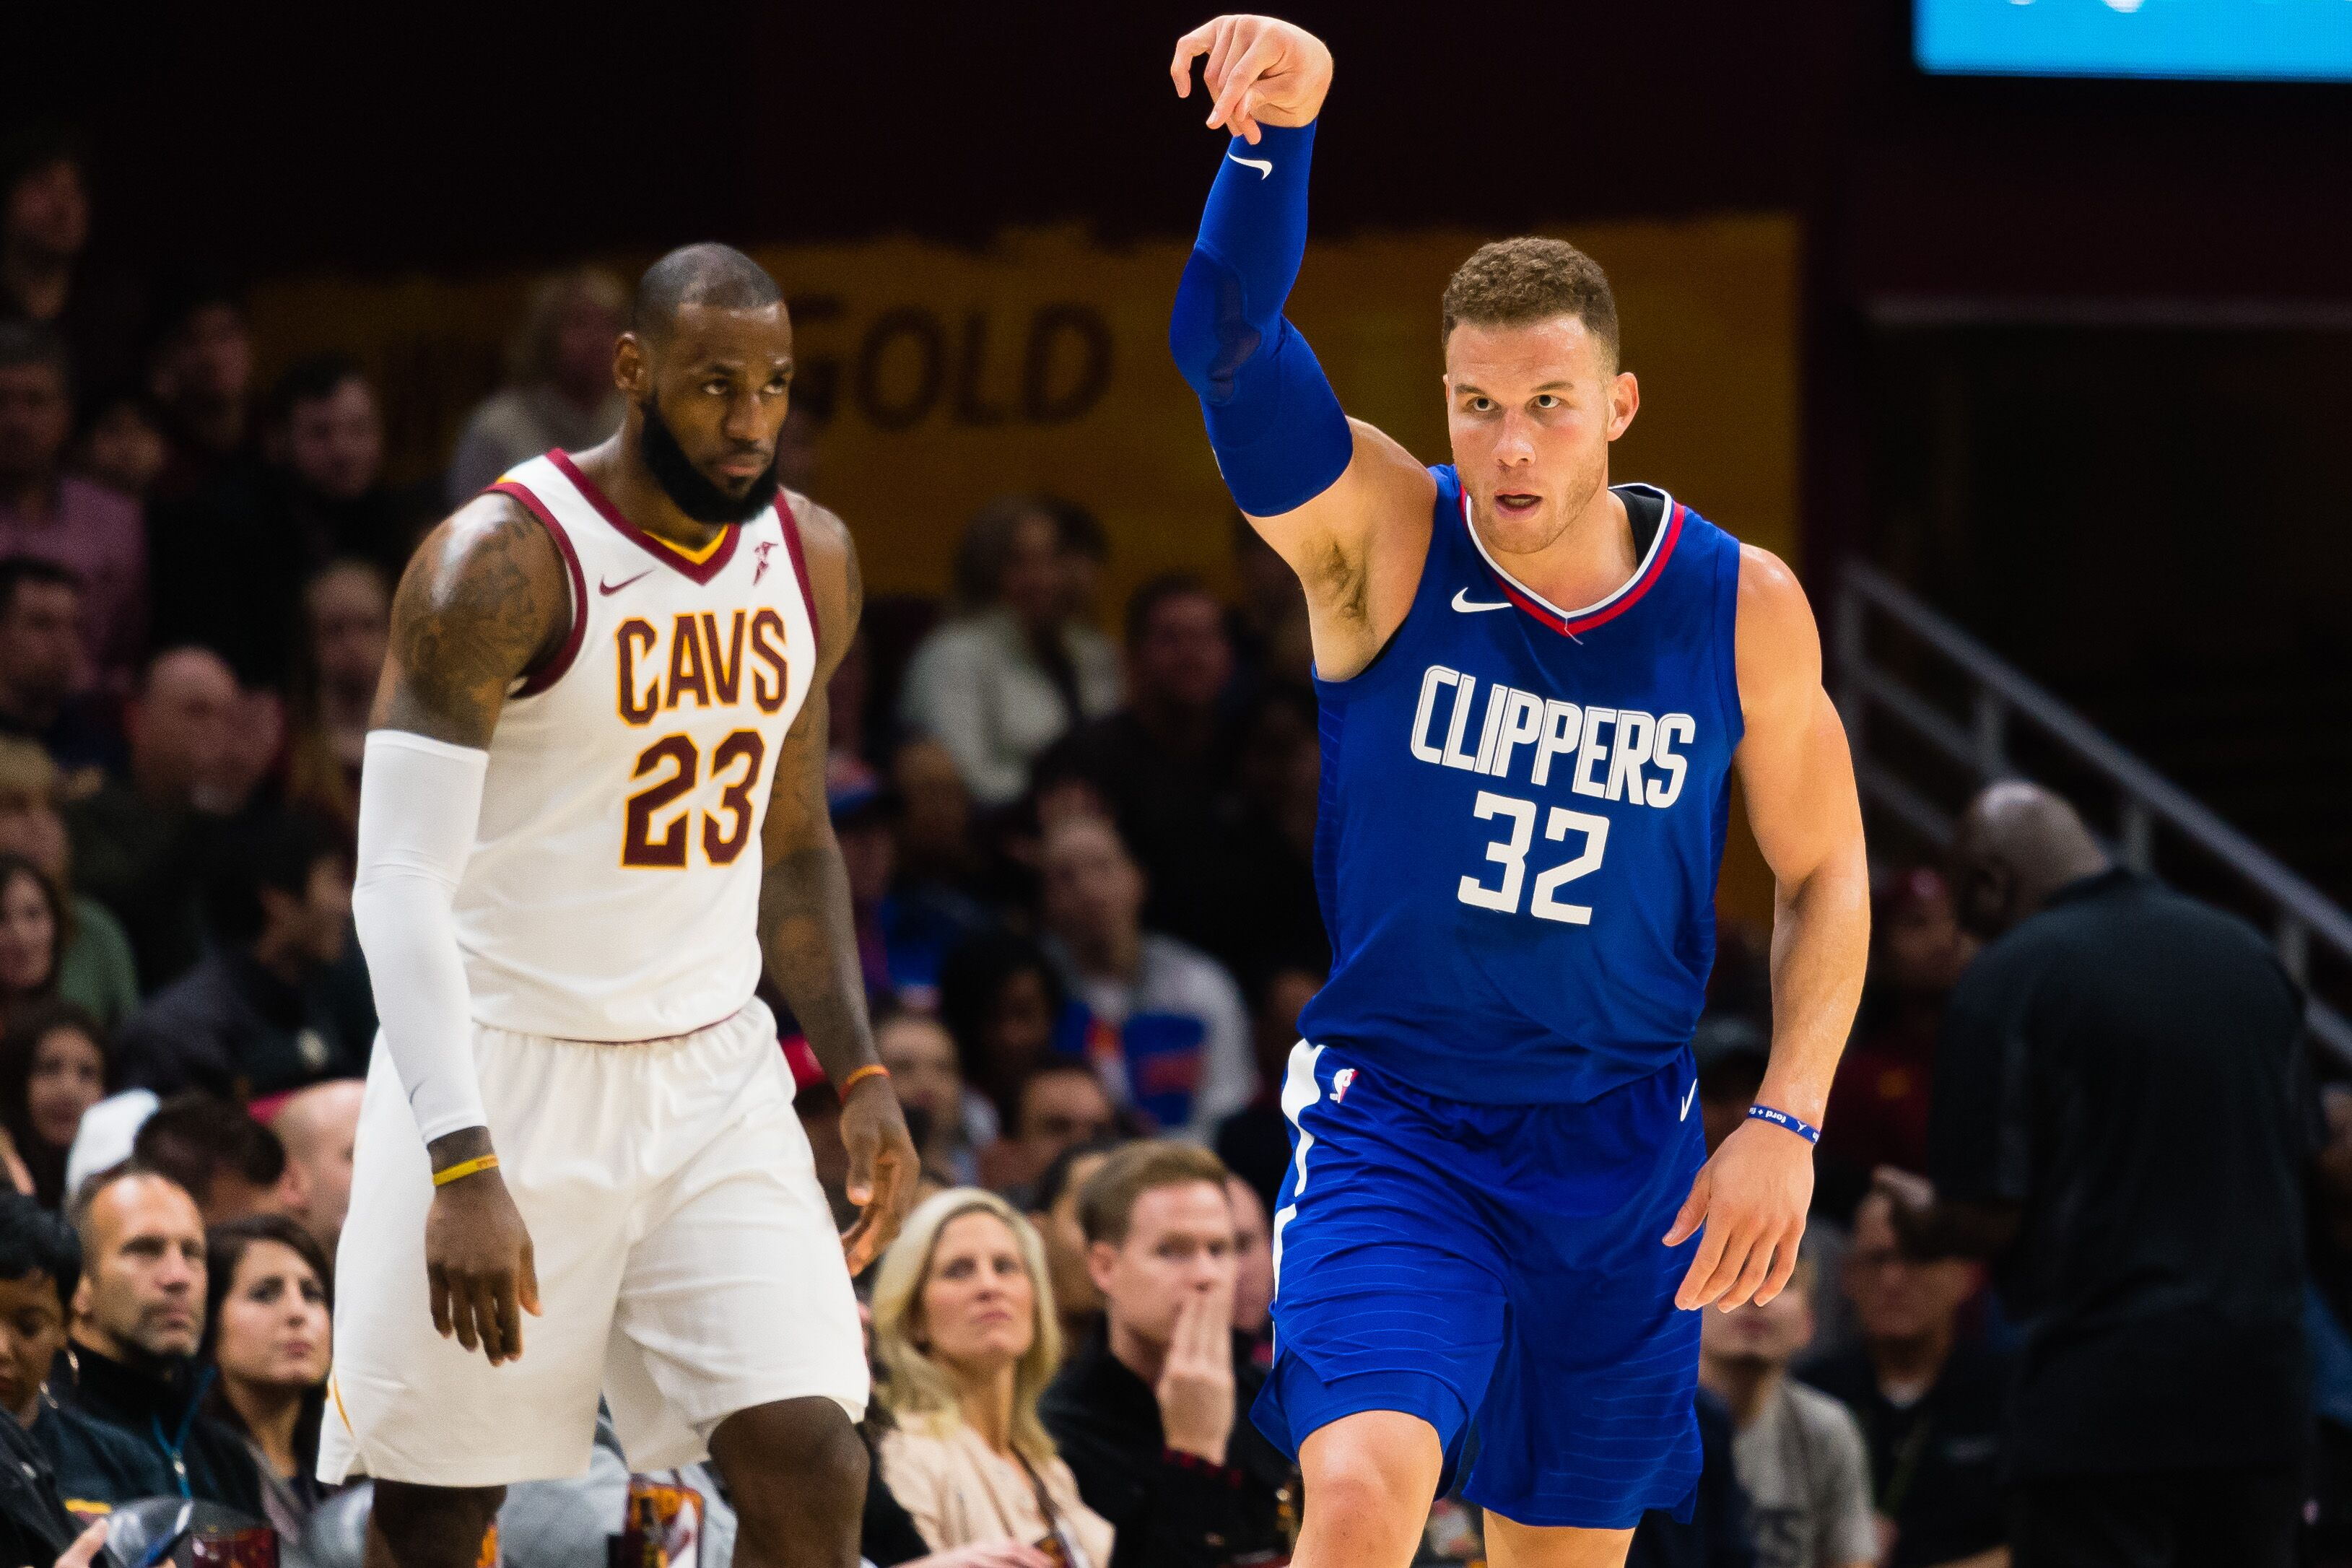 875532234-los-angeles-clippers-v-cleveland-cavaliers.jpg